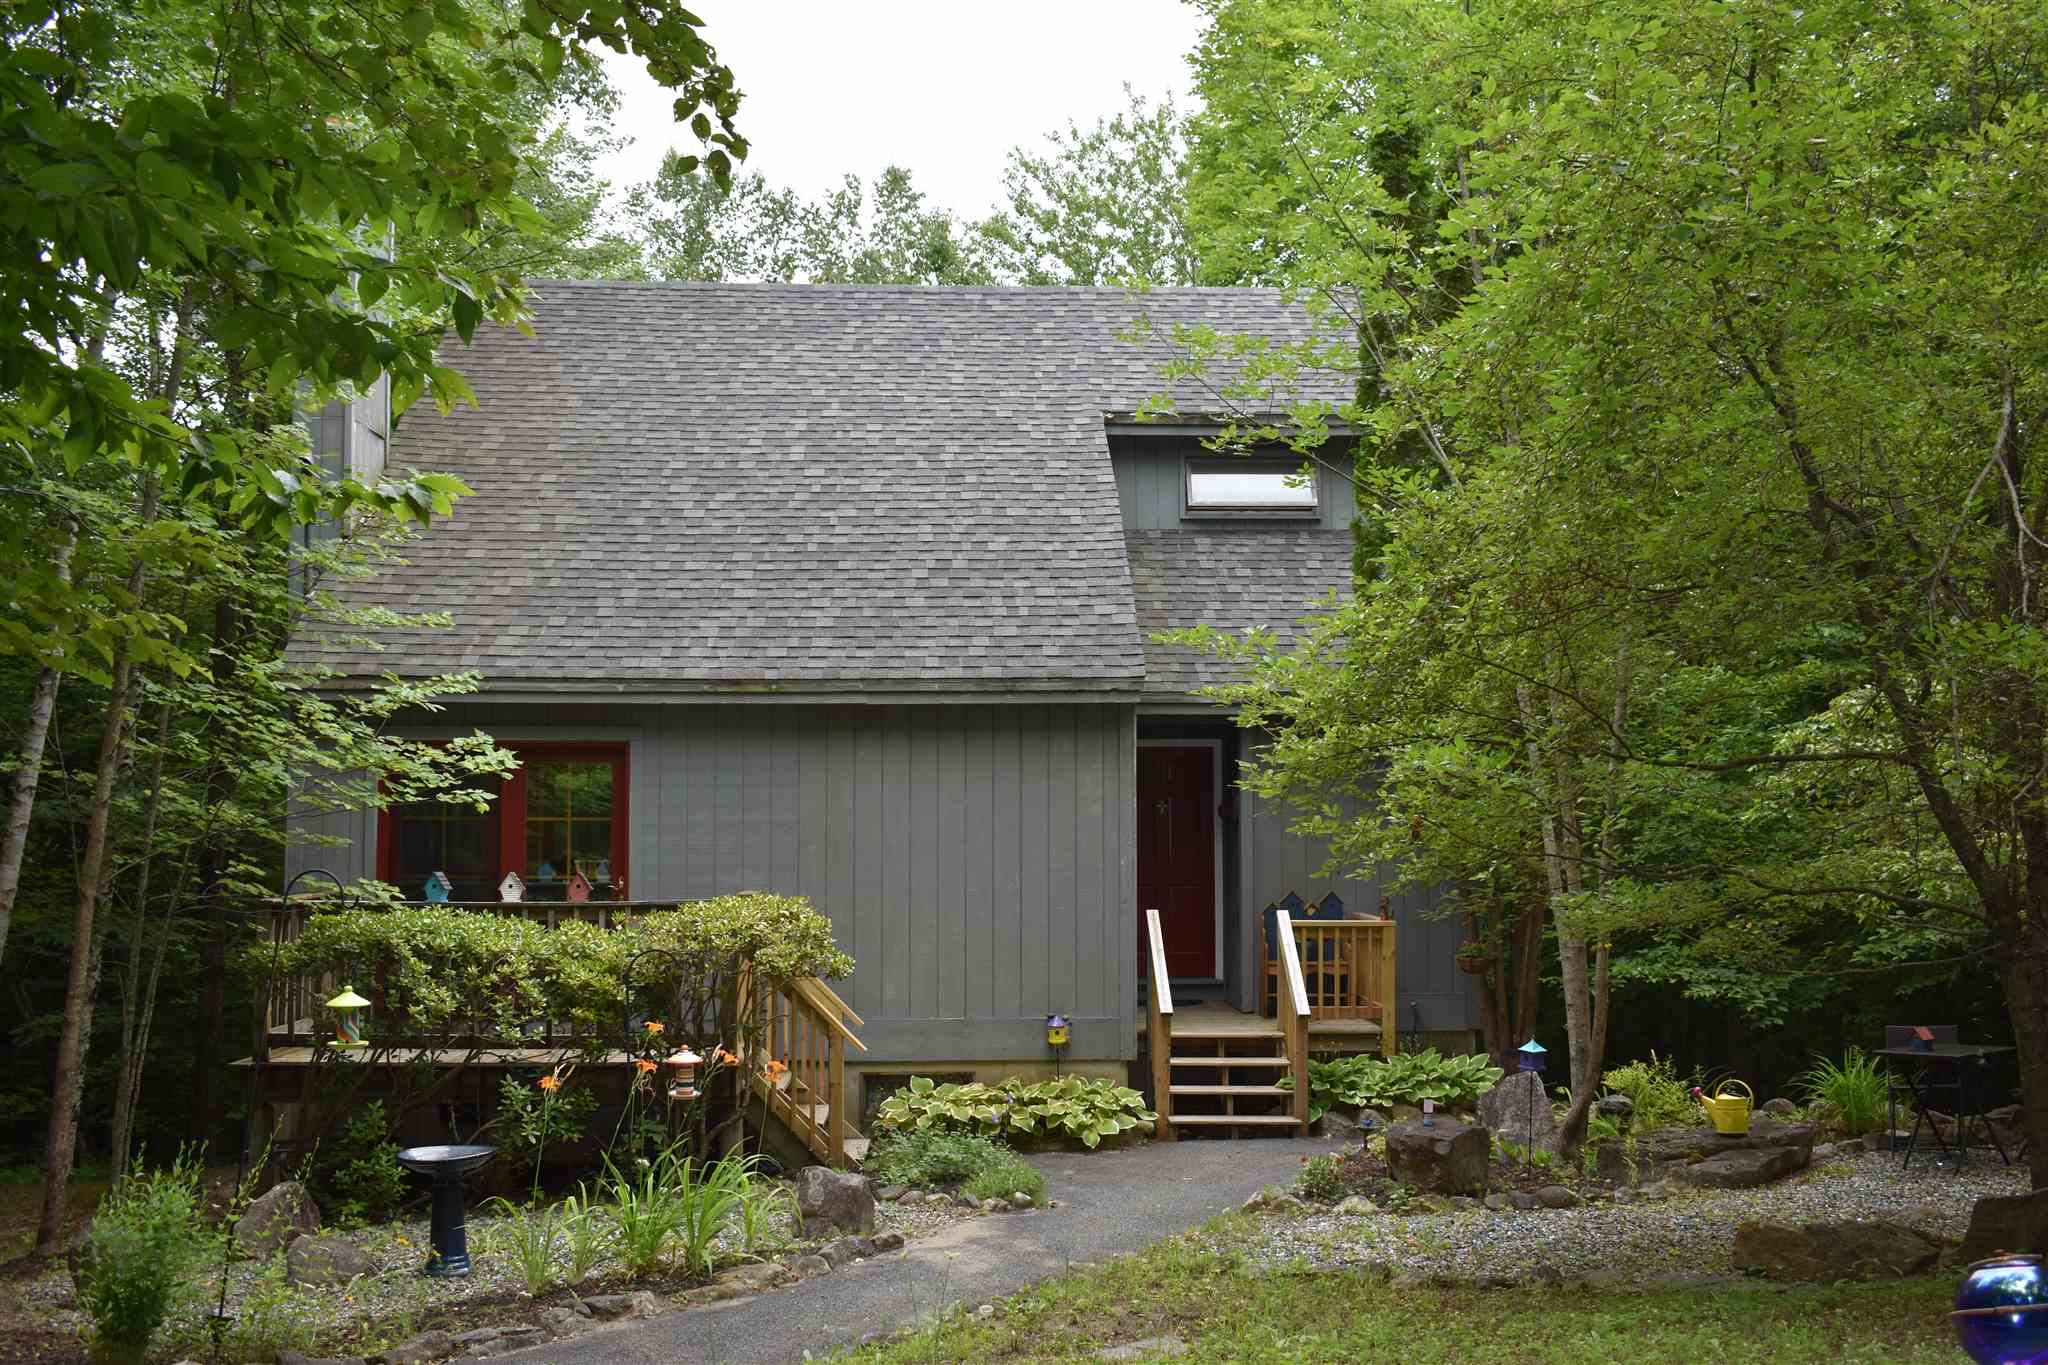 MLS 4818139: 37 Ridge Road, Enfield NH